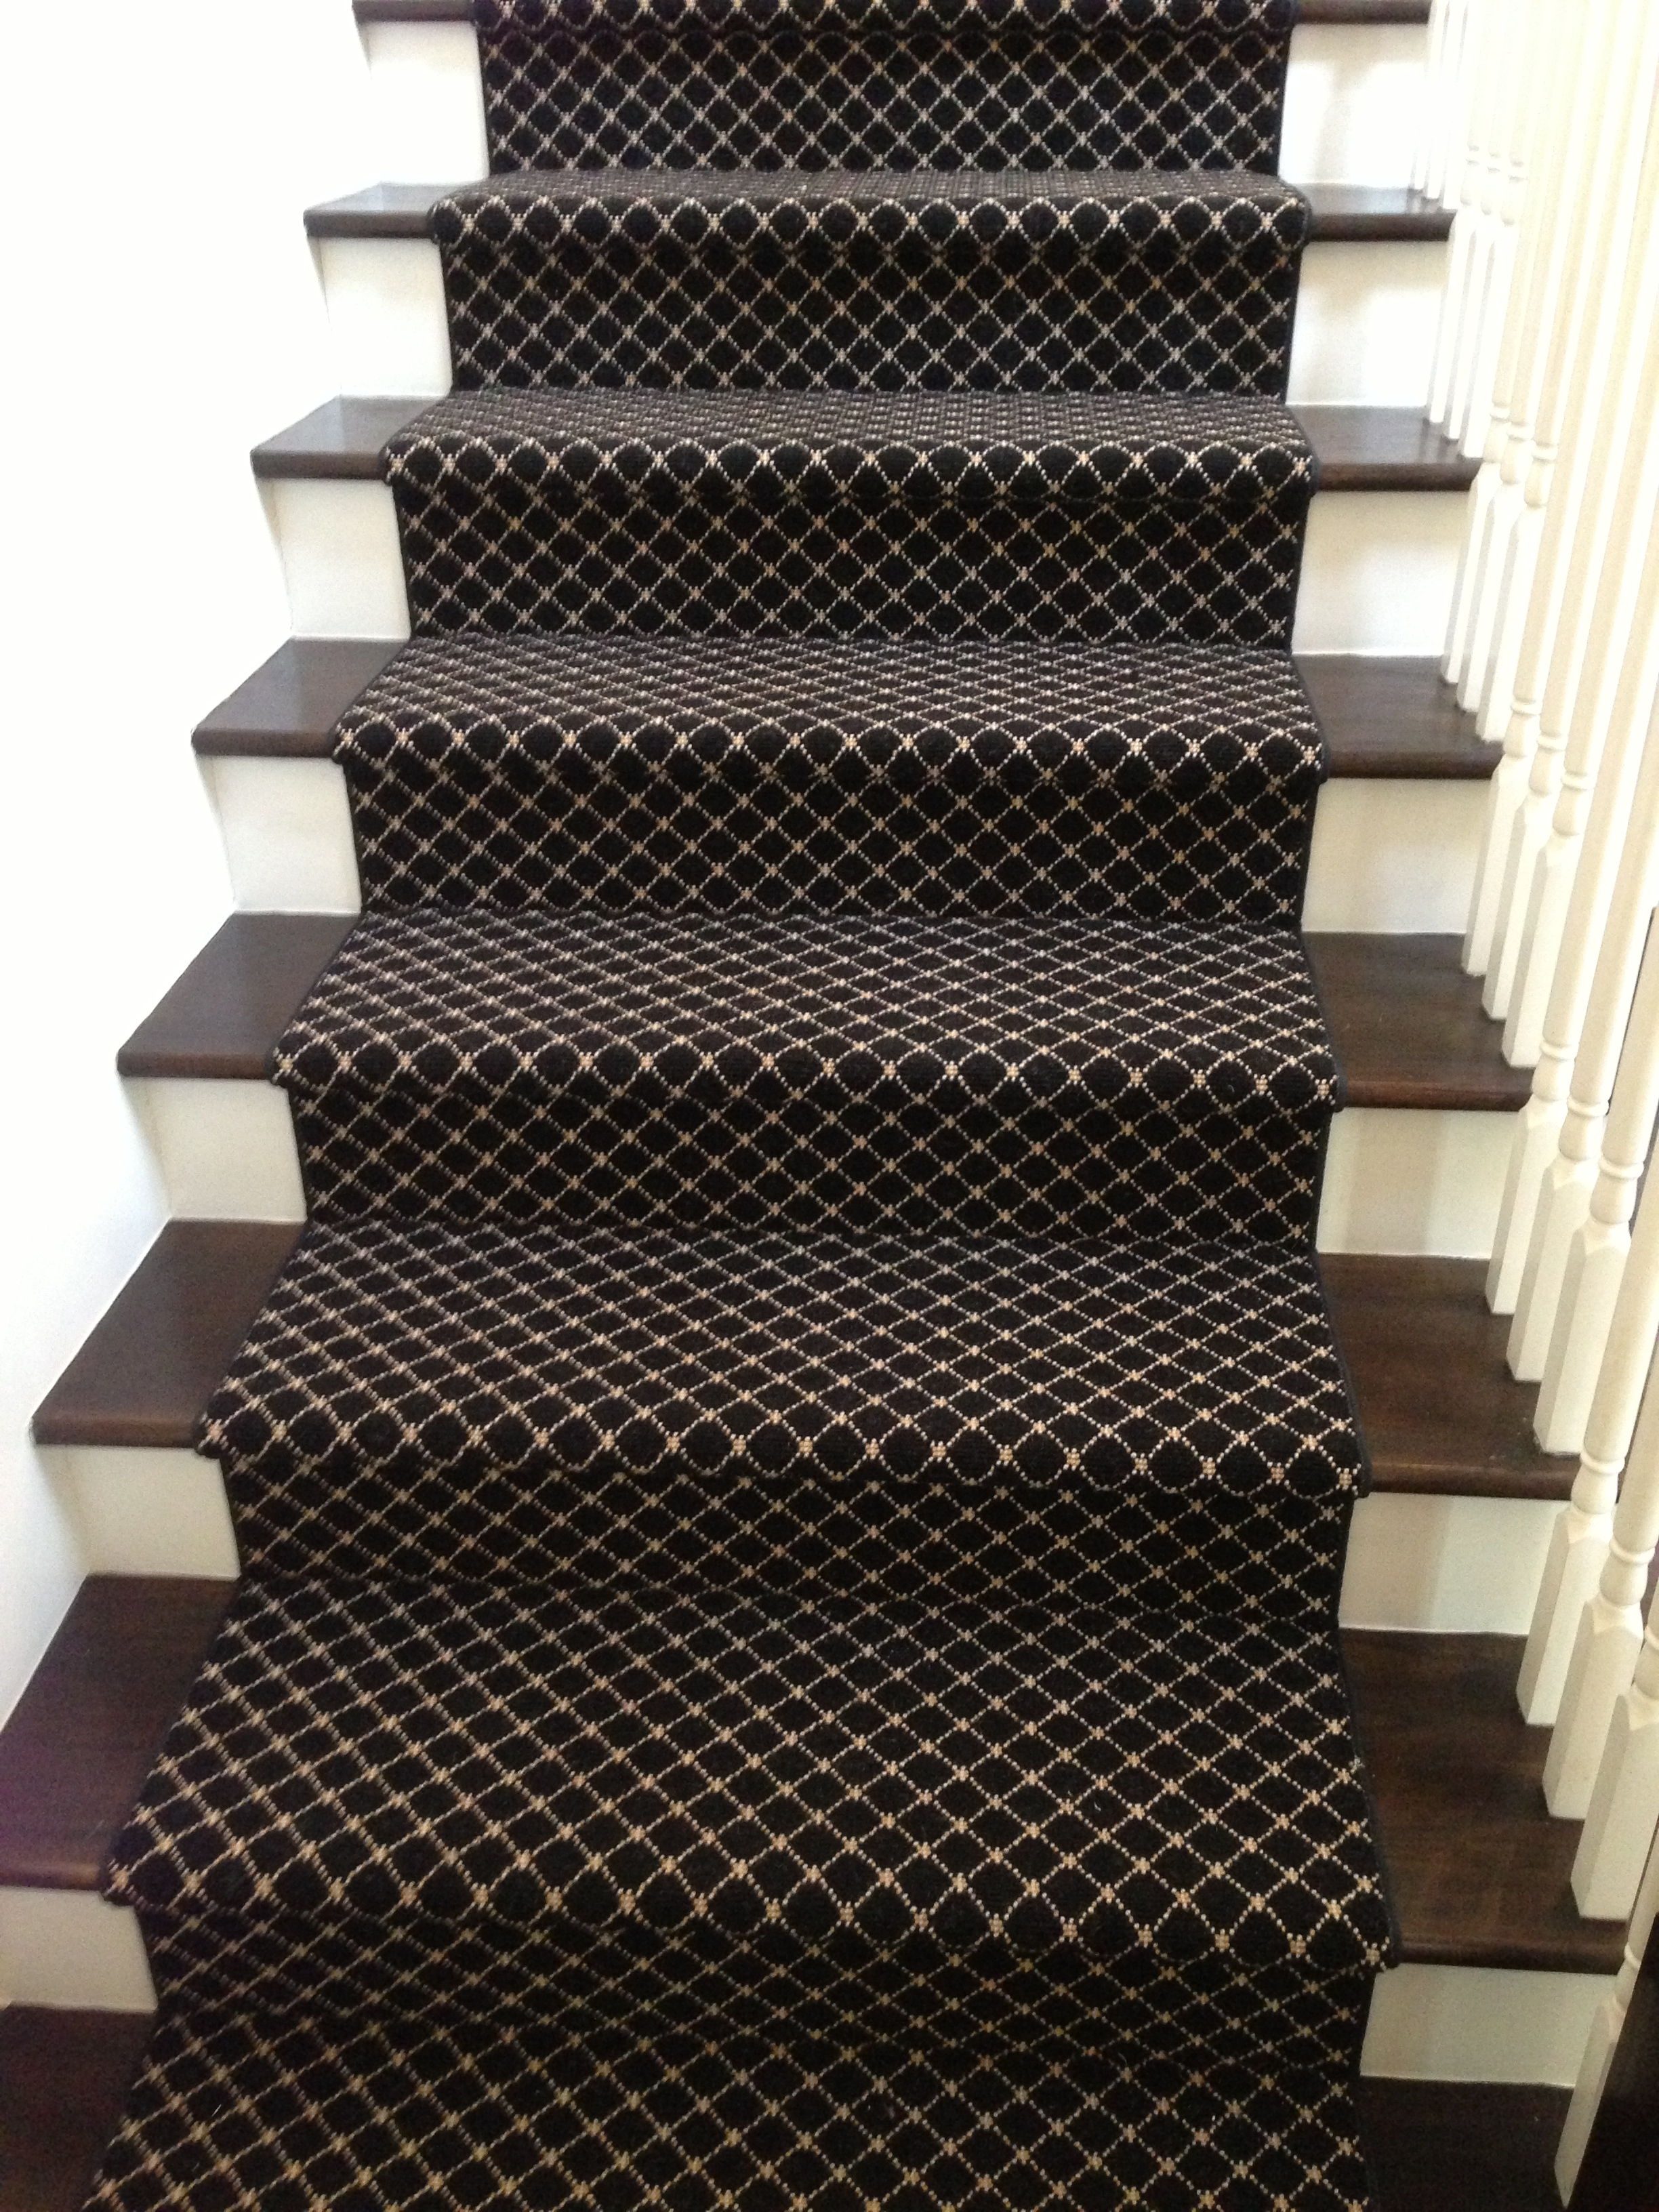 Should I Carpet My Stairs With The Same Carpet I Use Upstairs | Low Pile Carpet For Stairs | Laminate | Unusual | Looped | Antelope | Bedroom